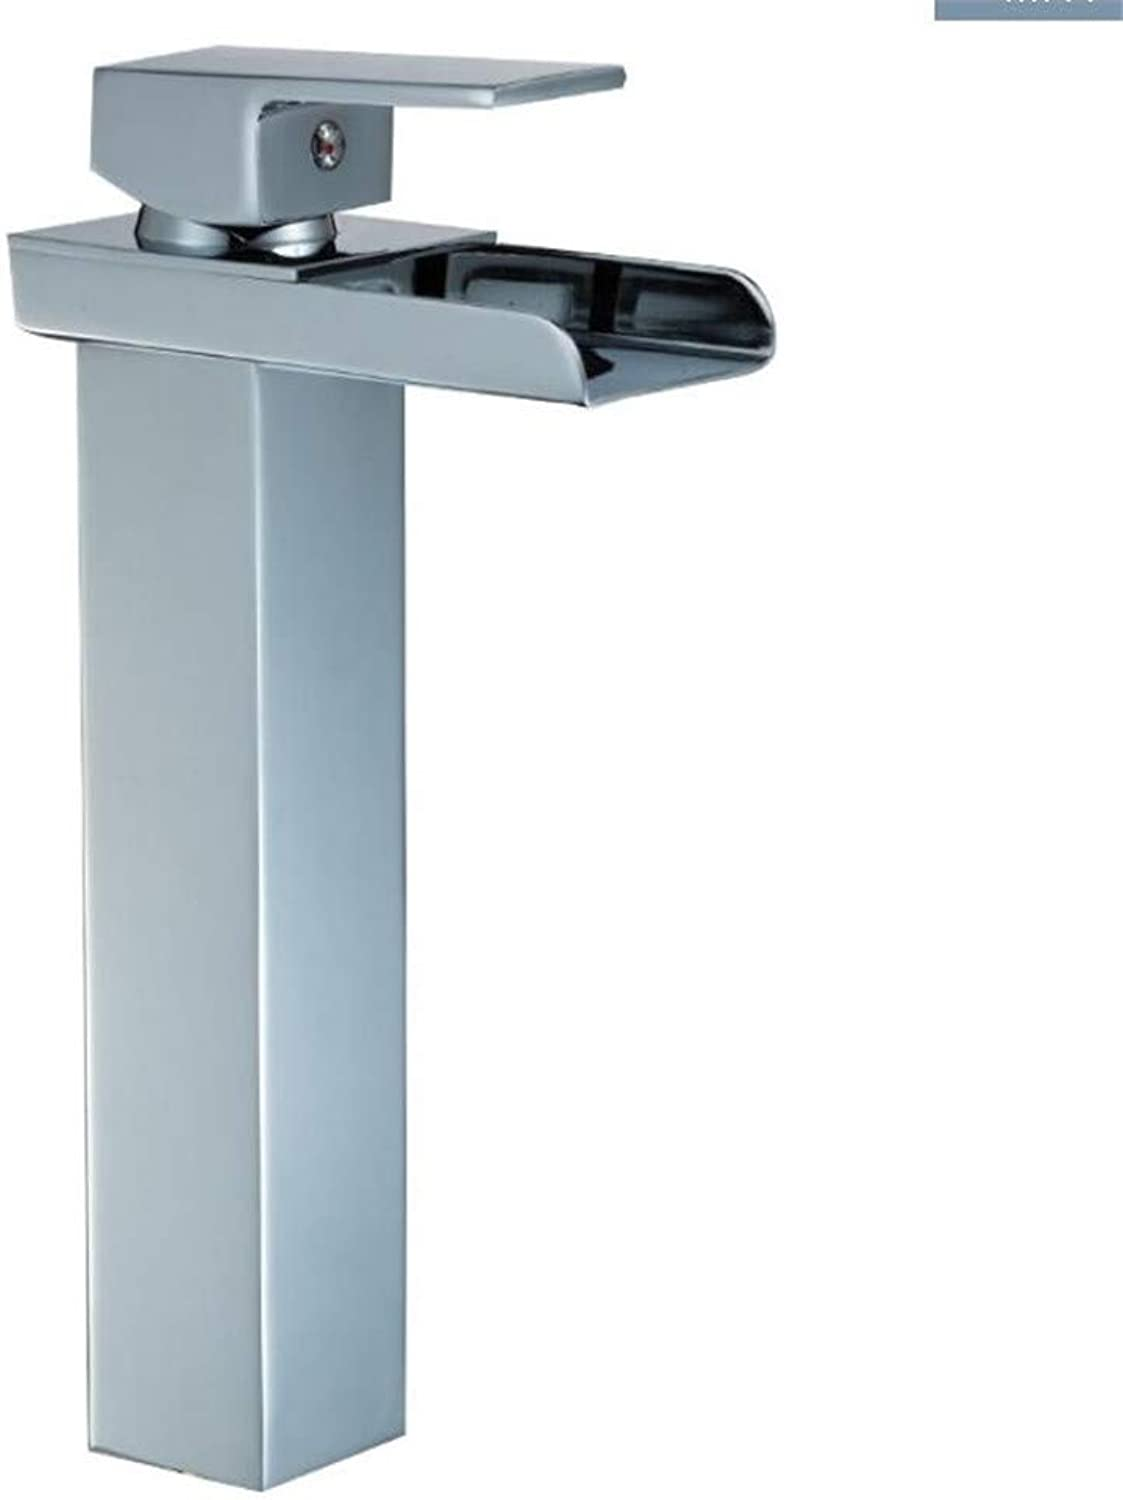 Basin Mixer Tap Galvanized Bathroom Washbasin European Style Hot and Cold Water Mixing Faucet Hose.